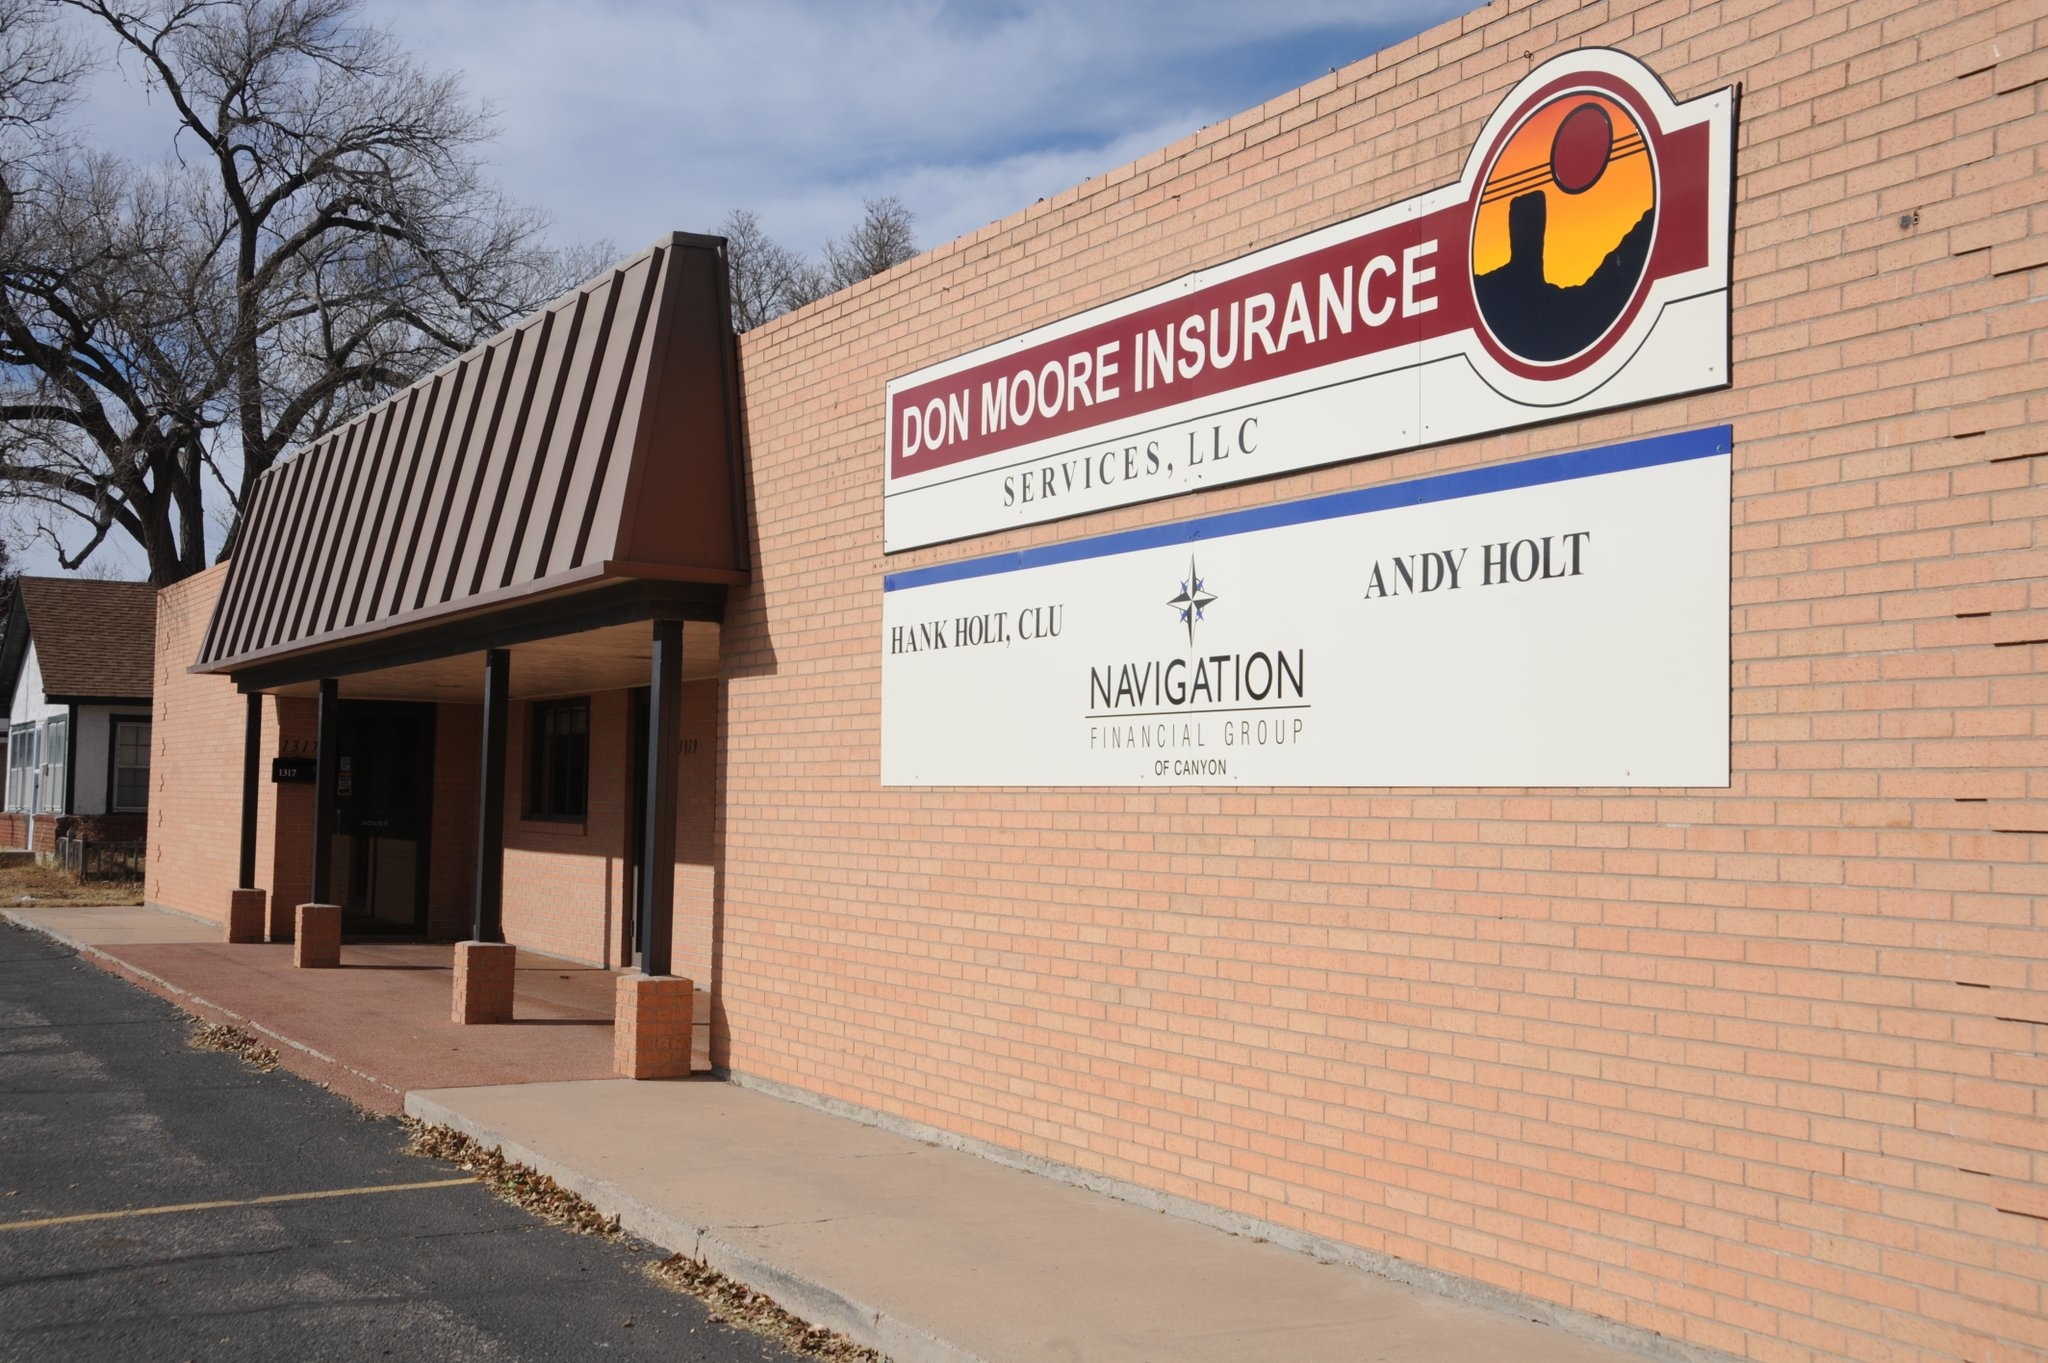 Don Moore Insurance Services, LLC image 0